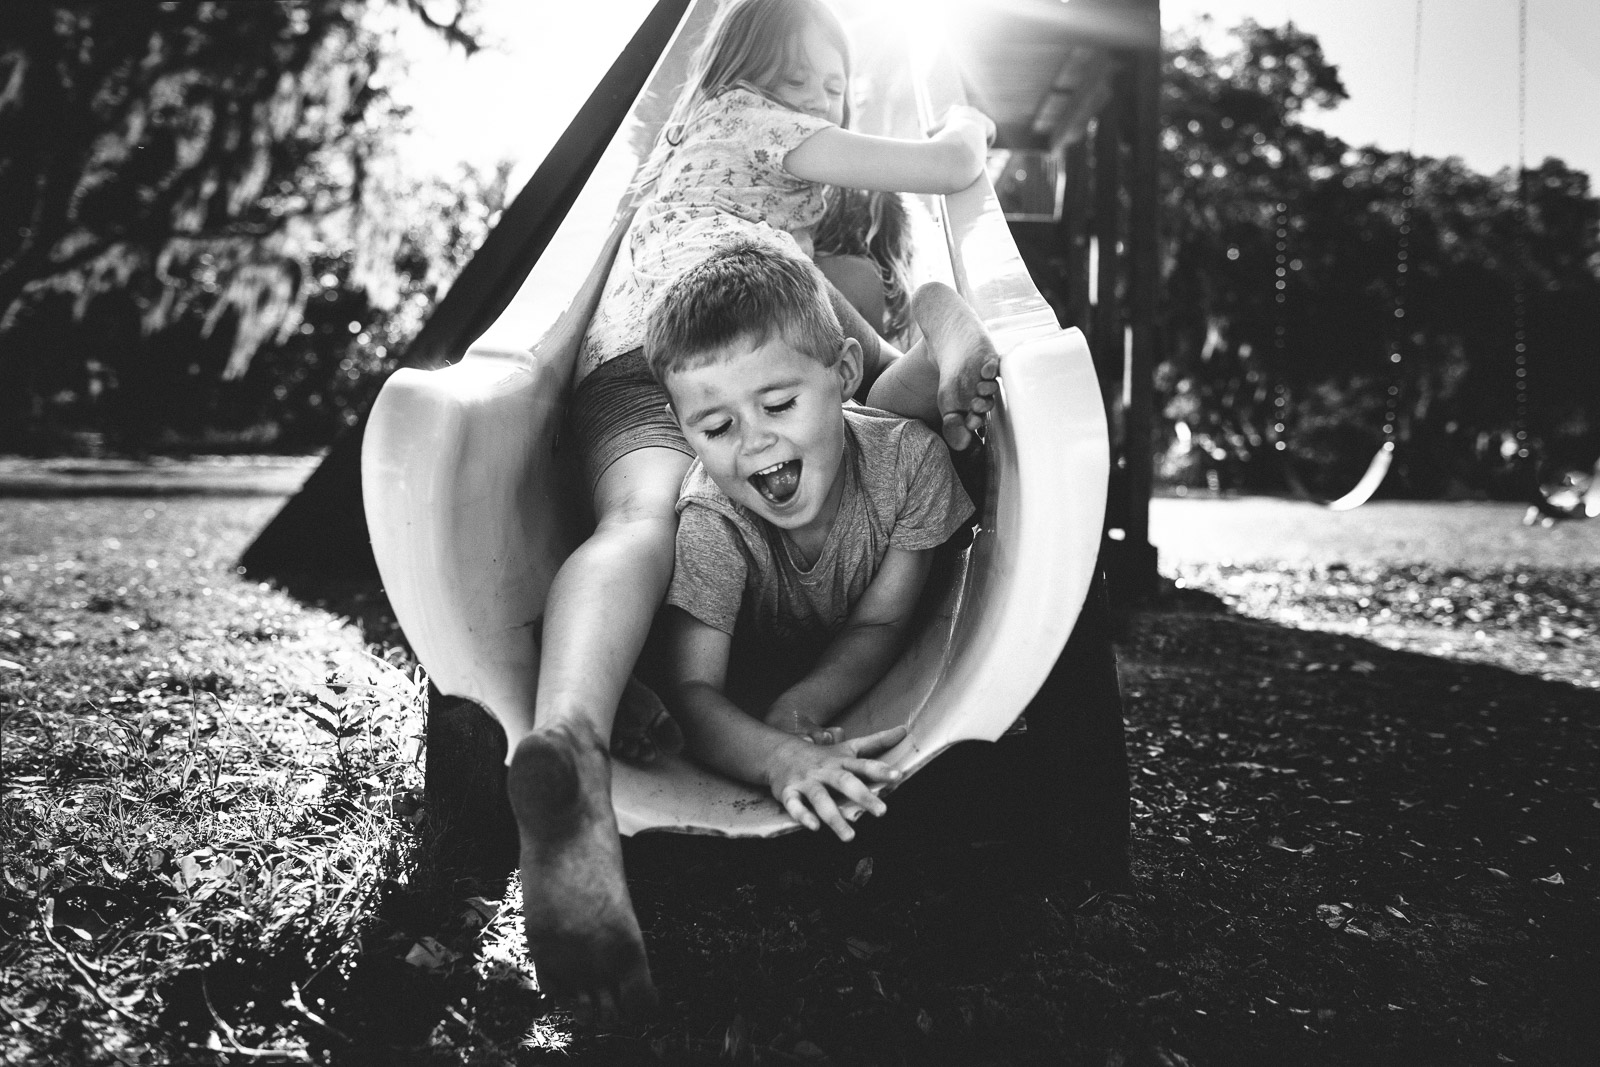 5 Activities To Help Photograph The Fun Of Childhood